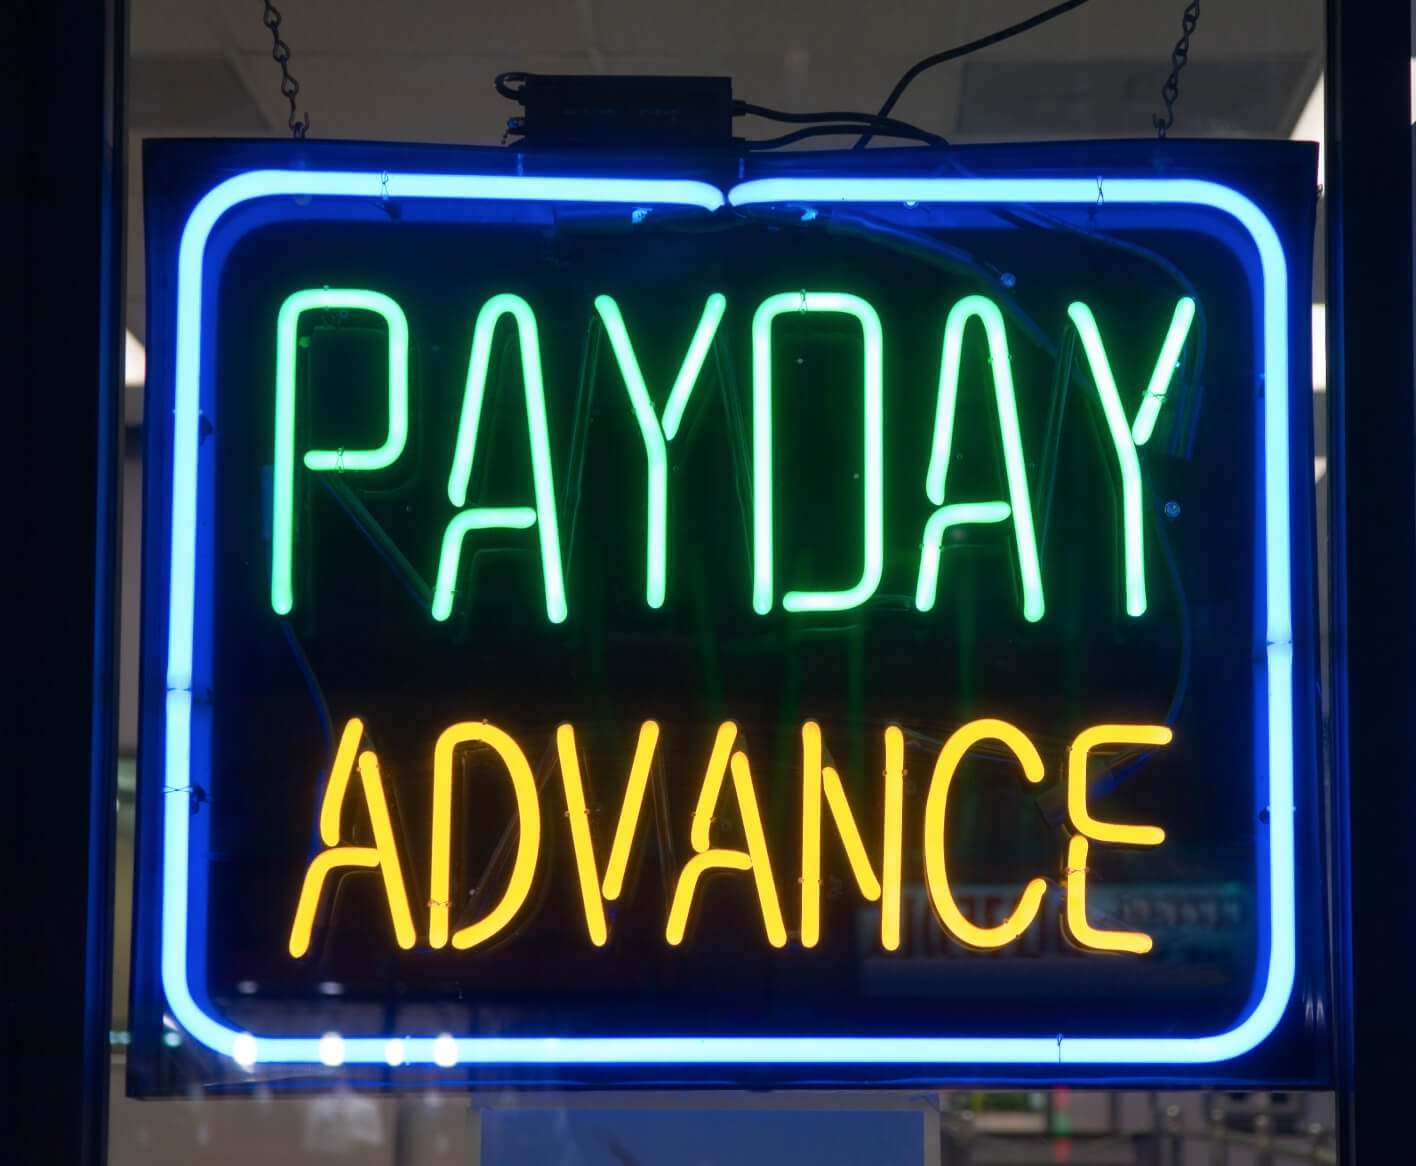 payday-advance-neon-sign